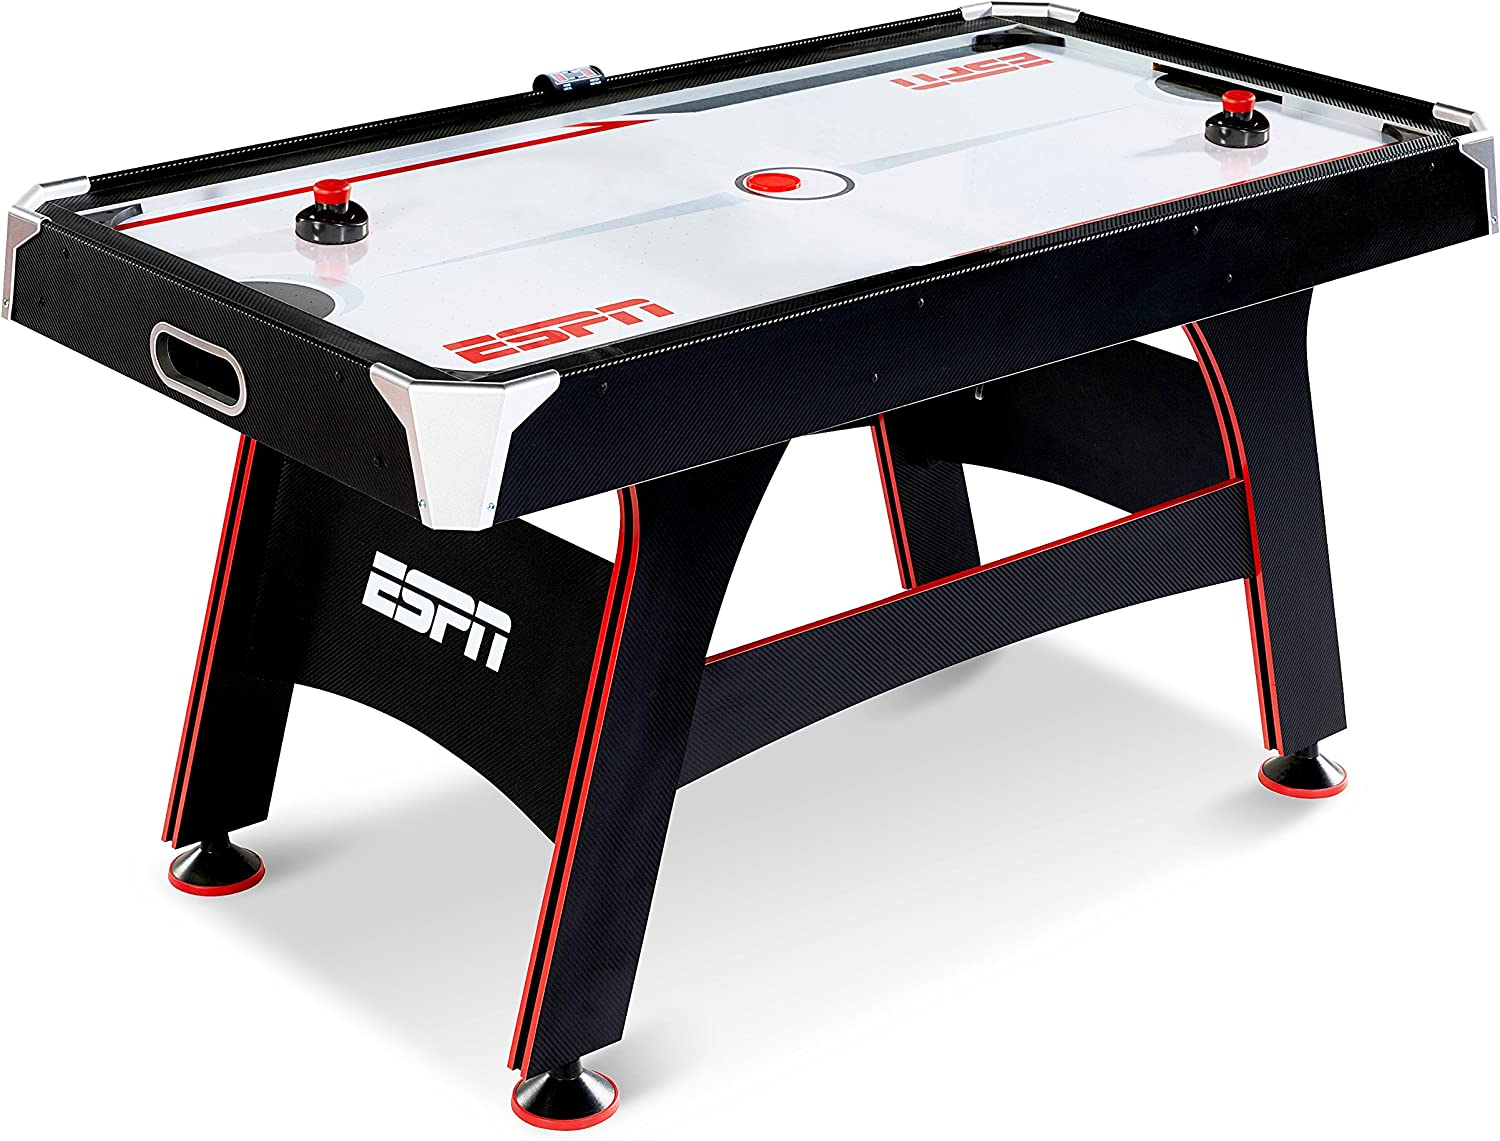 Amazon Com Espn Air Hockey Game Table Indoor Sports Gaming Table Set With Equipment Accessories 2 Paddles 2 Pucks And Led Electronic Score Keeper 5 Feet Sports Outdoors